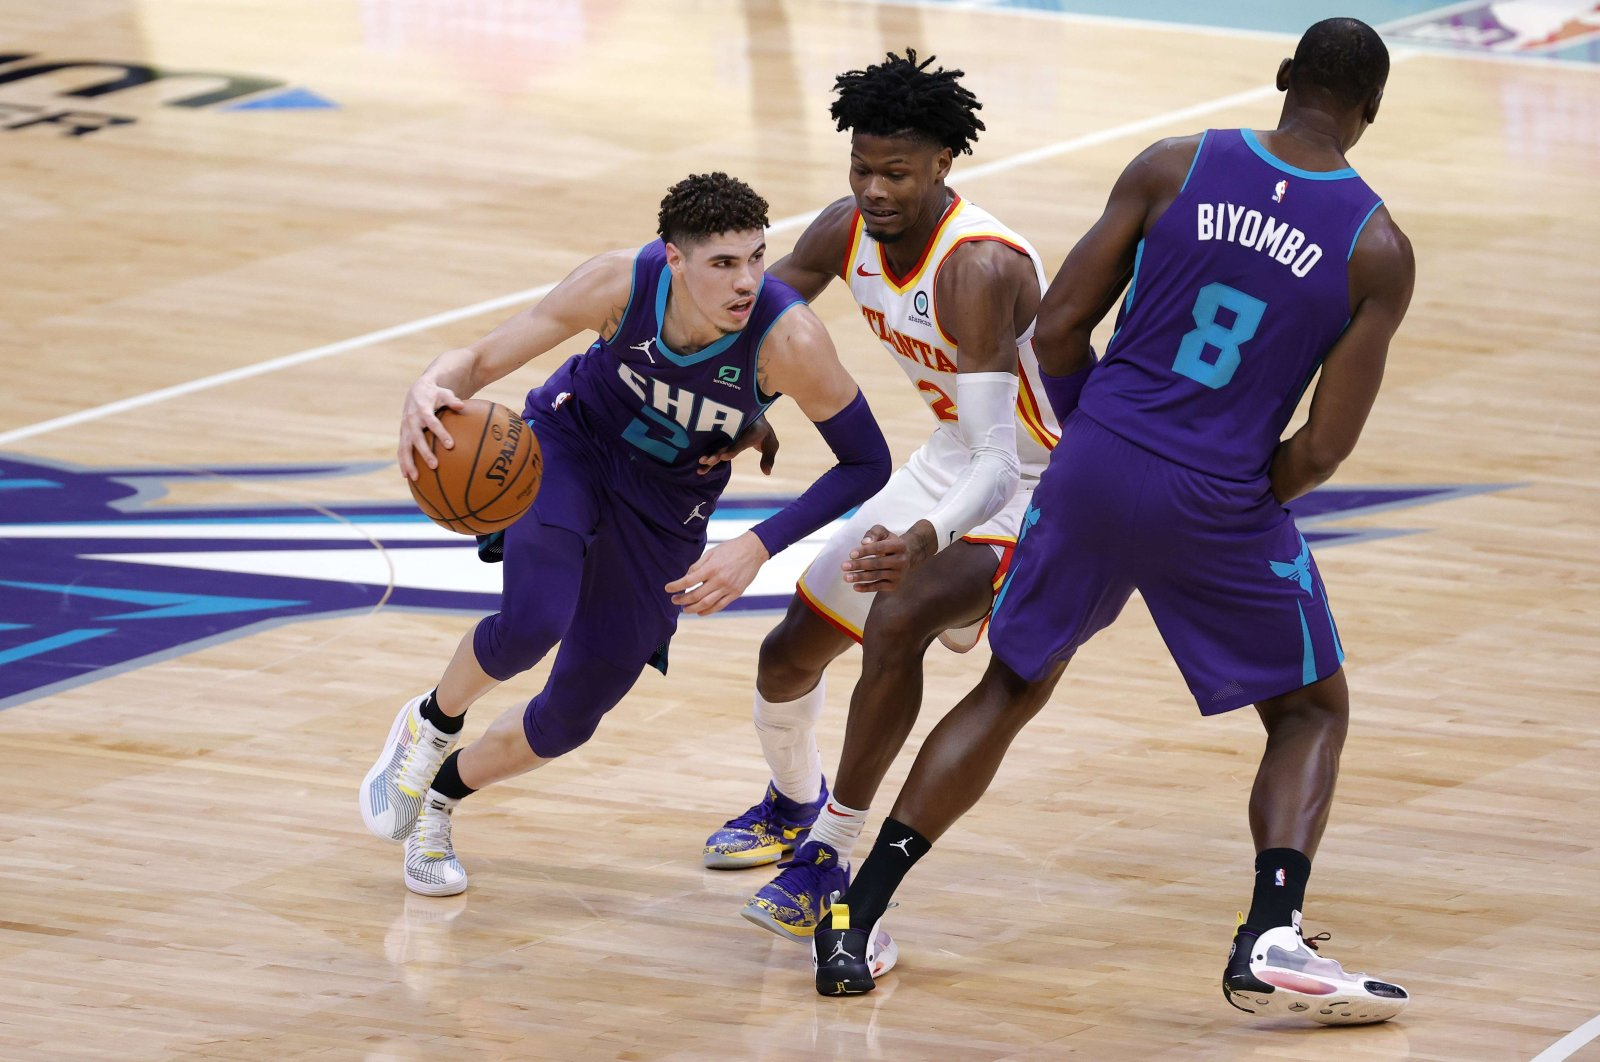 Charlotte Hornets' LaMelo Ball drives to the basket against Atlanta Hawks' Cam Reddish during an NBA game at the Spectrum Center in Charlotte, North Carolina, U.S., Jan. 9, 2021. (AFP Photo)